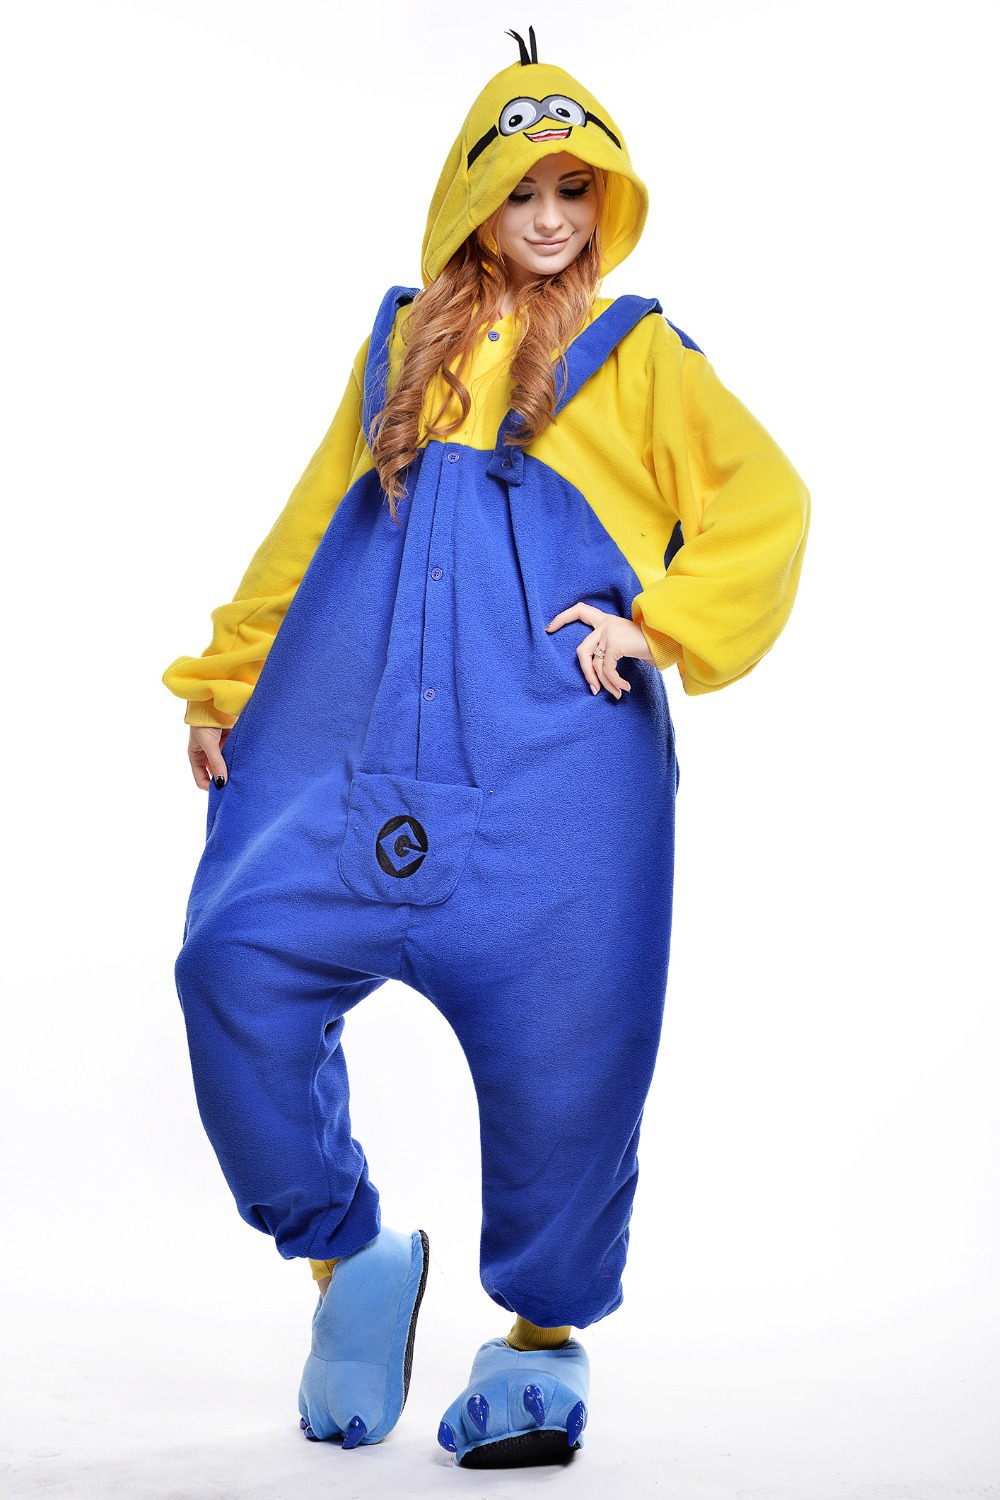 Aliexpress.com : Buy Minion Costume/ Plus Size Halloween Costume ...